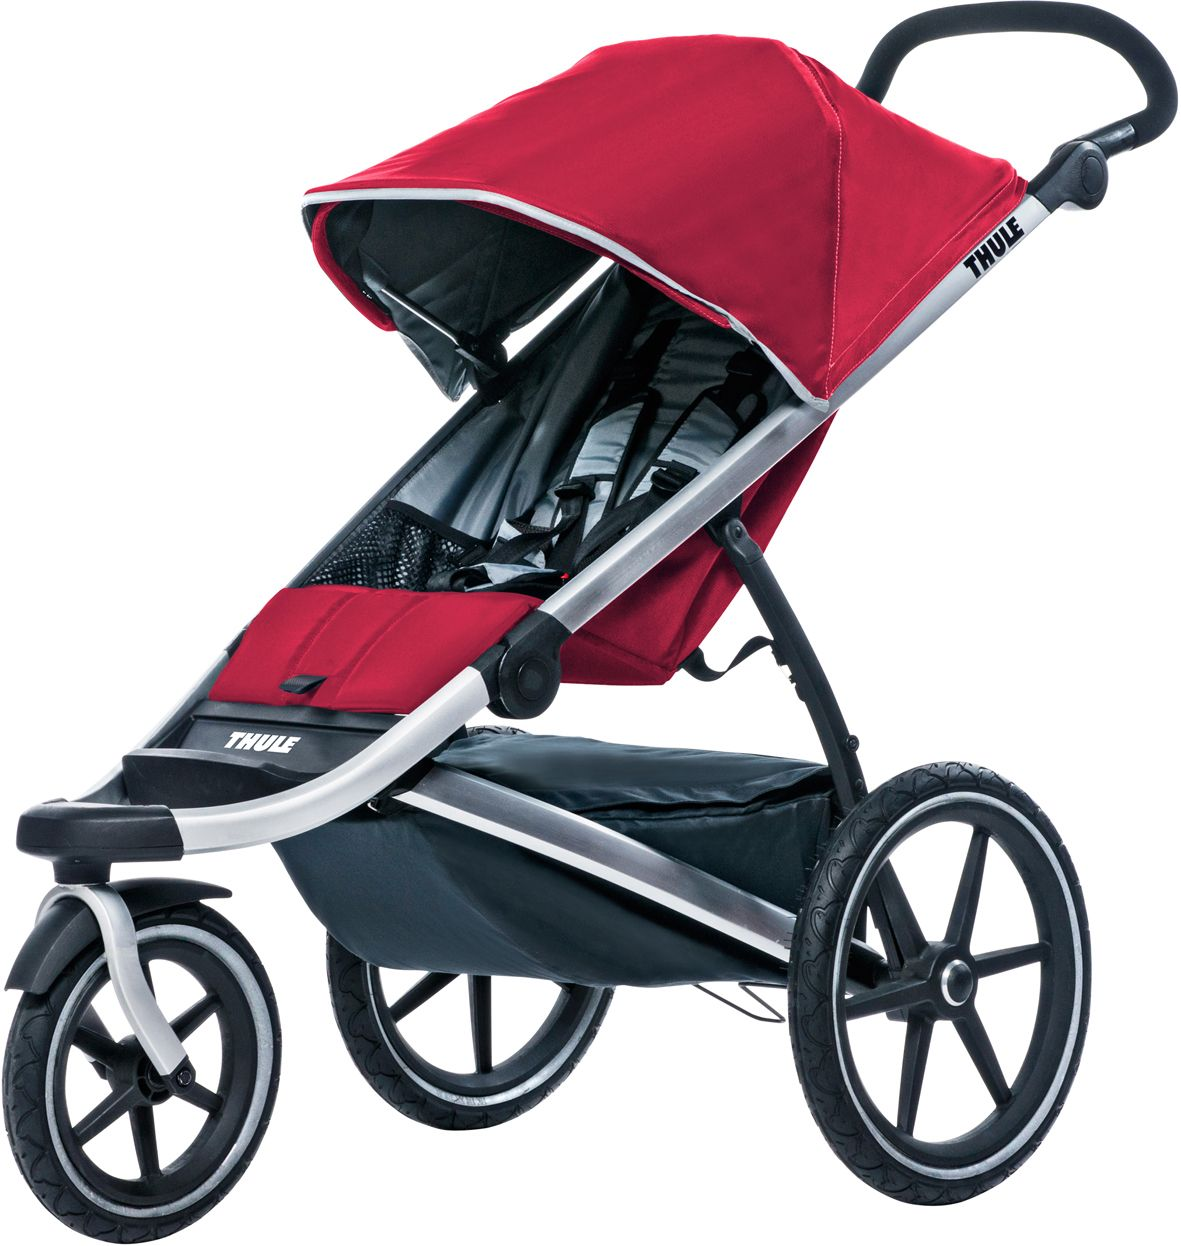 Thule Urban Glide Stroller Red / Black (With images